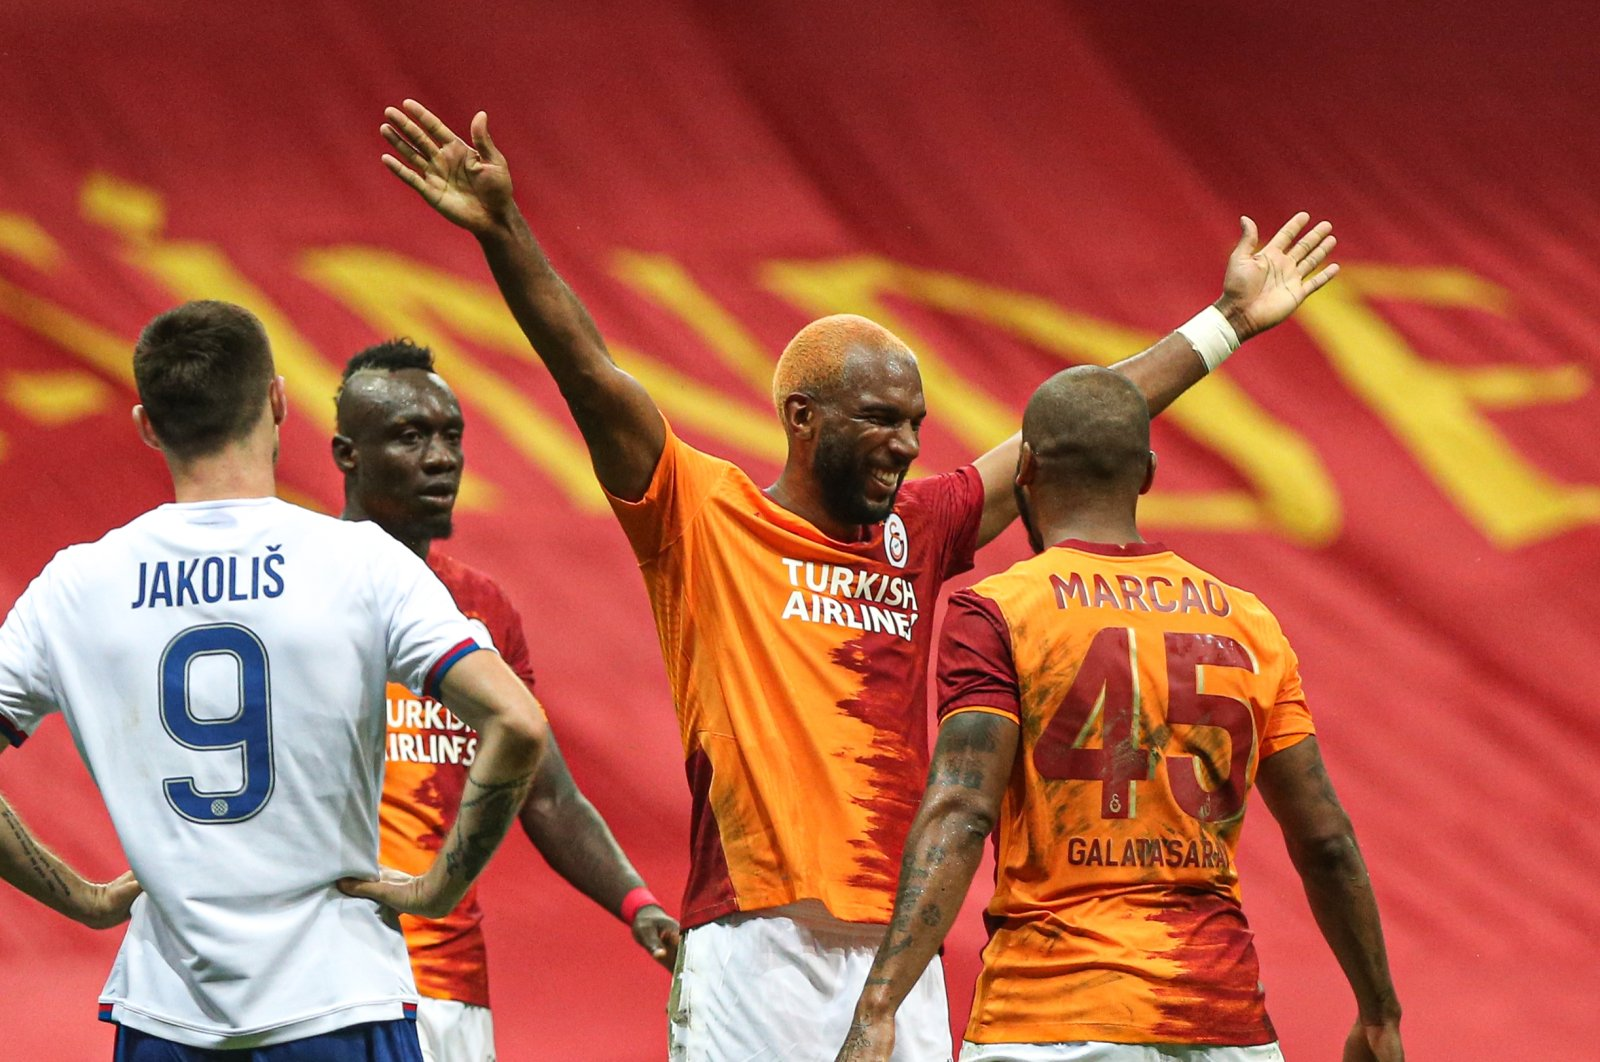 Galatasaray players celebrate after the Europa League match against Hajduk Split, in Istanbul, Turkey, Sept. 24, 2020. (AA Photo)